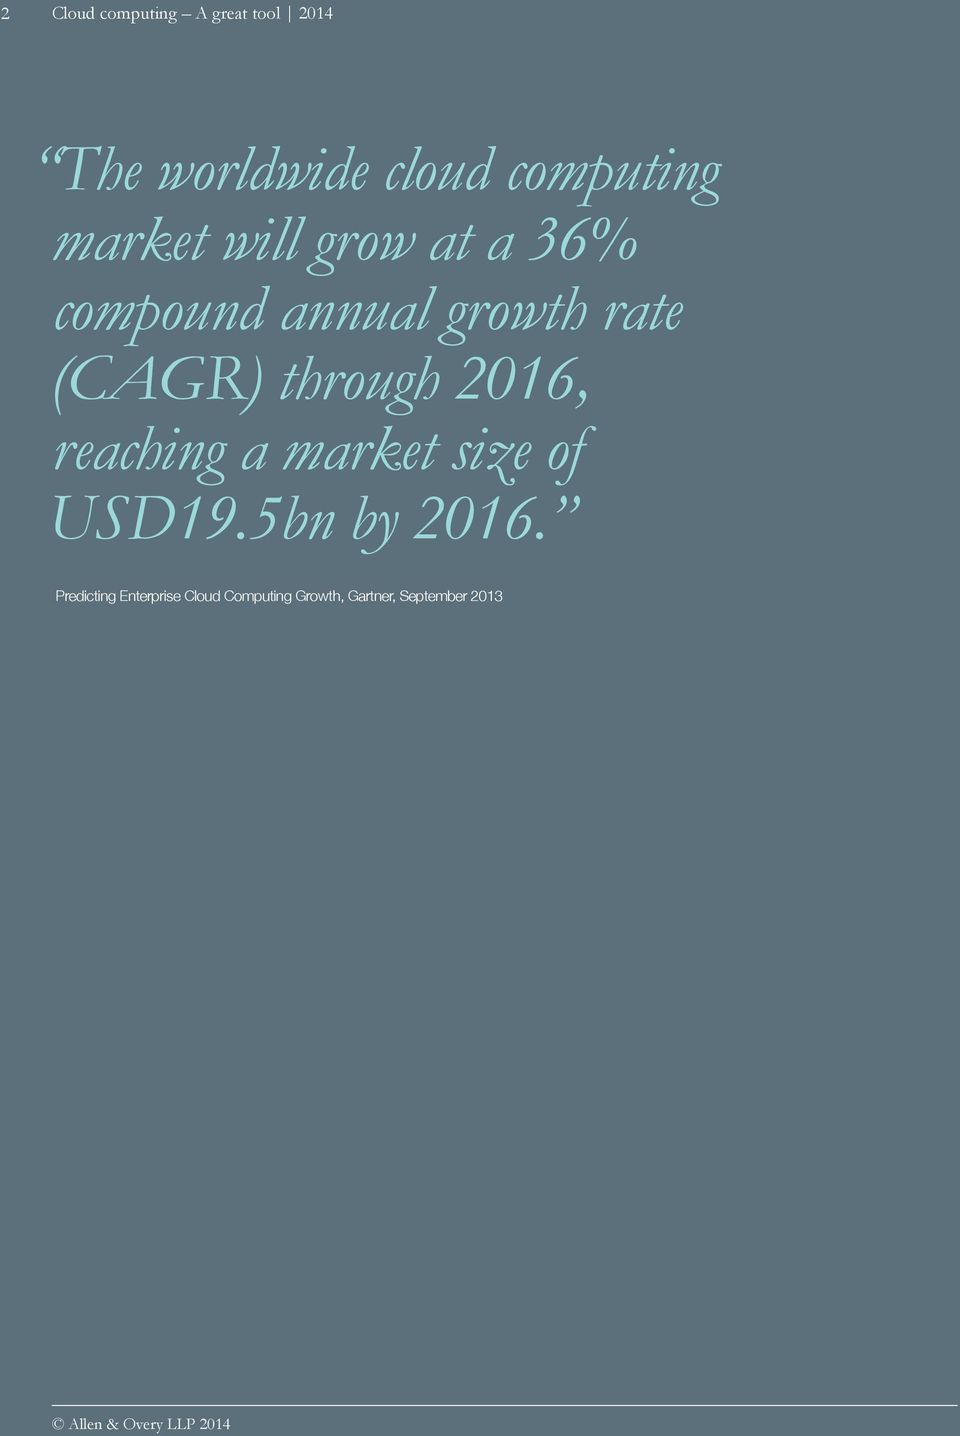 2016, reaching a market size of USD19.5bn by 2016.